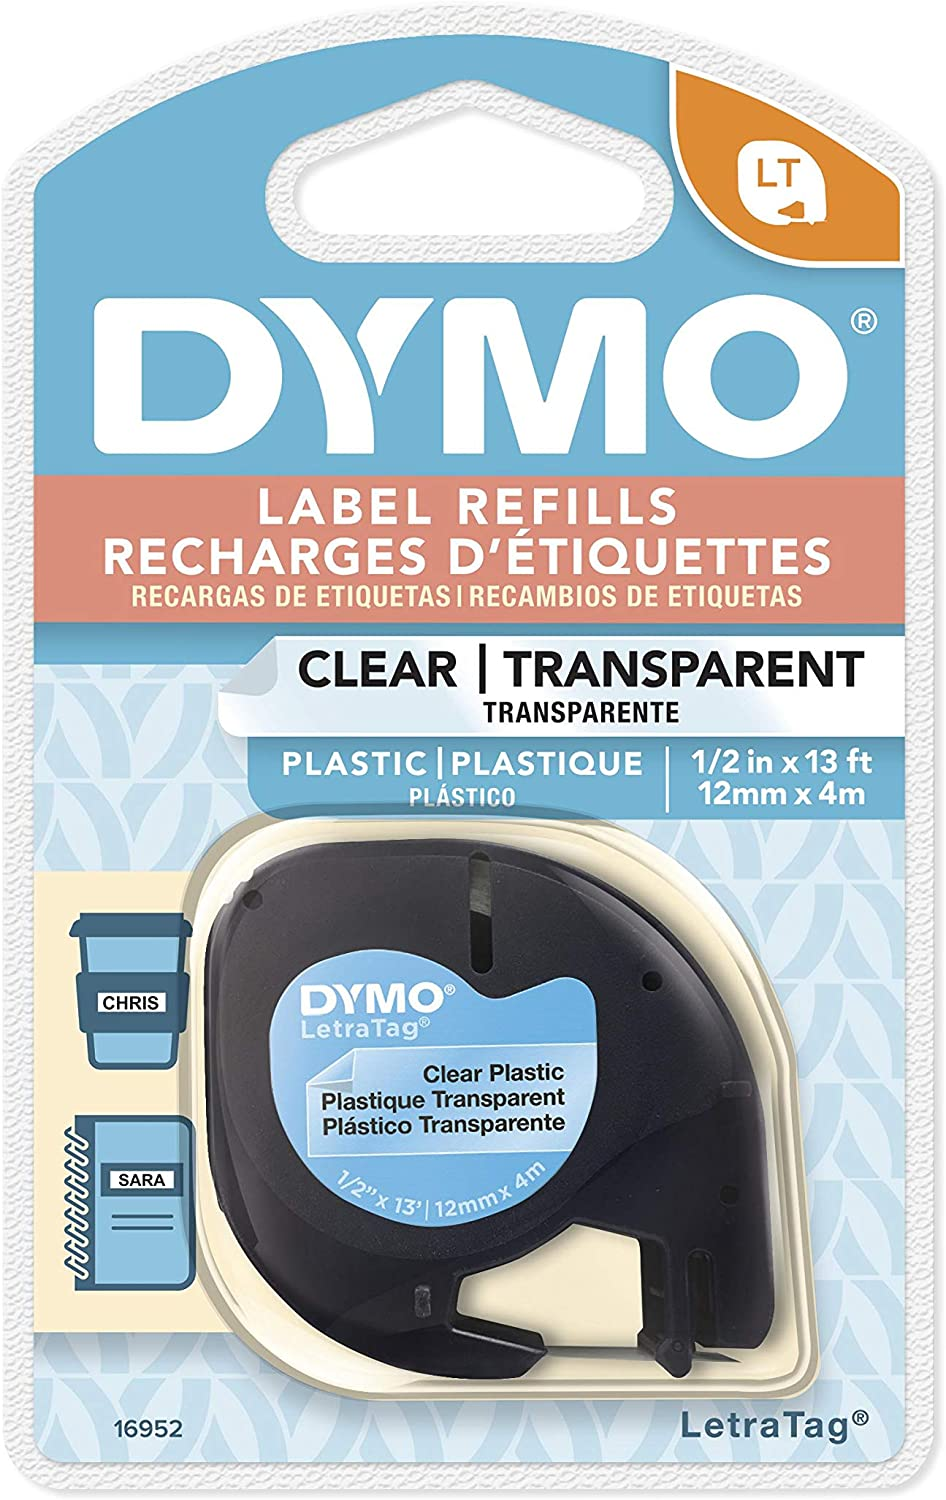 DYMO Authentic LetraTag Labeling Tape for LetraTag Label Makers, Black print on Clear pastic tape, 1/2'' W x 13' L, 1 roll (16952) : Dymo Letratag Refills : Office Products